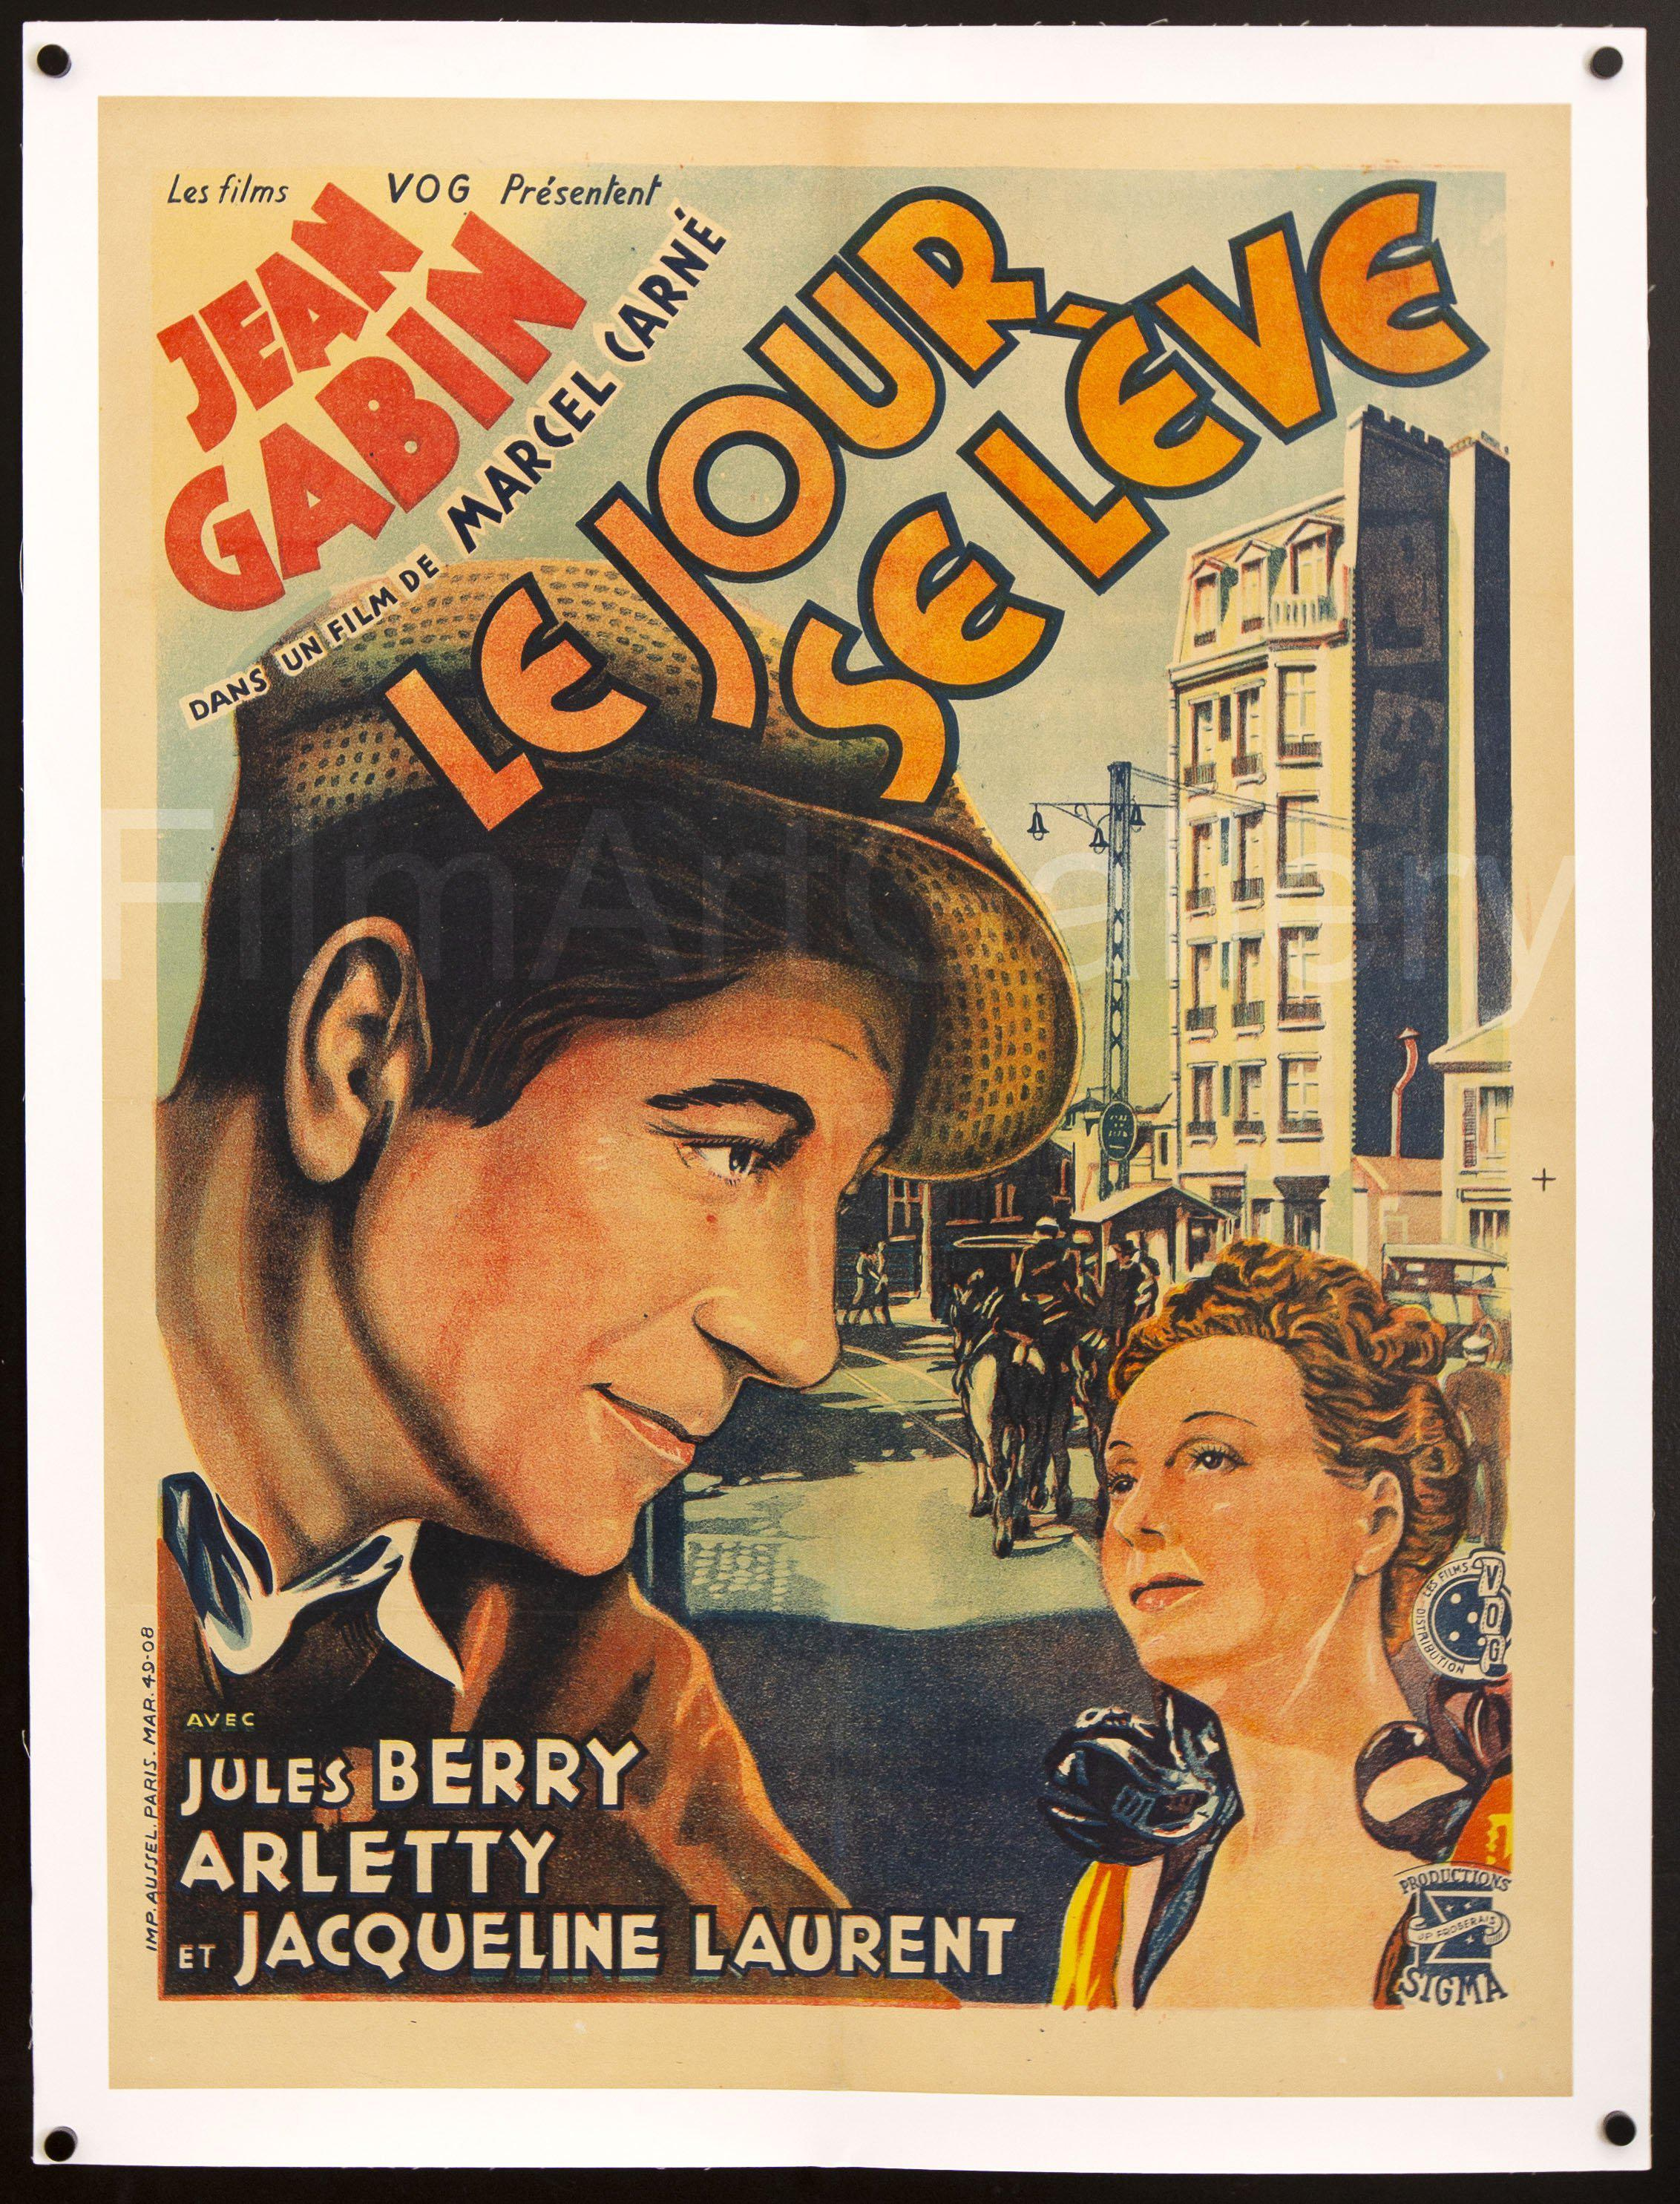 Le Jour Se Leve French small (23x32) Original Vintage Movie Poster